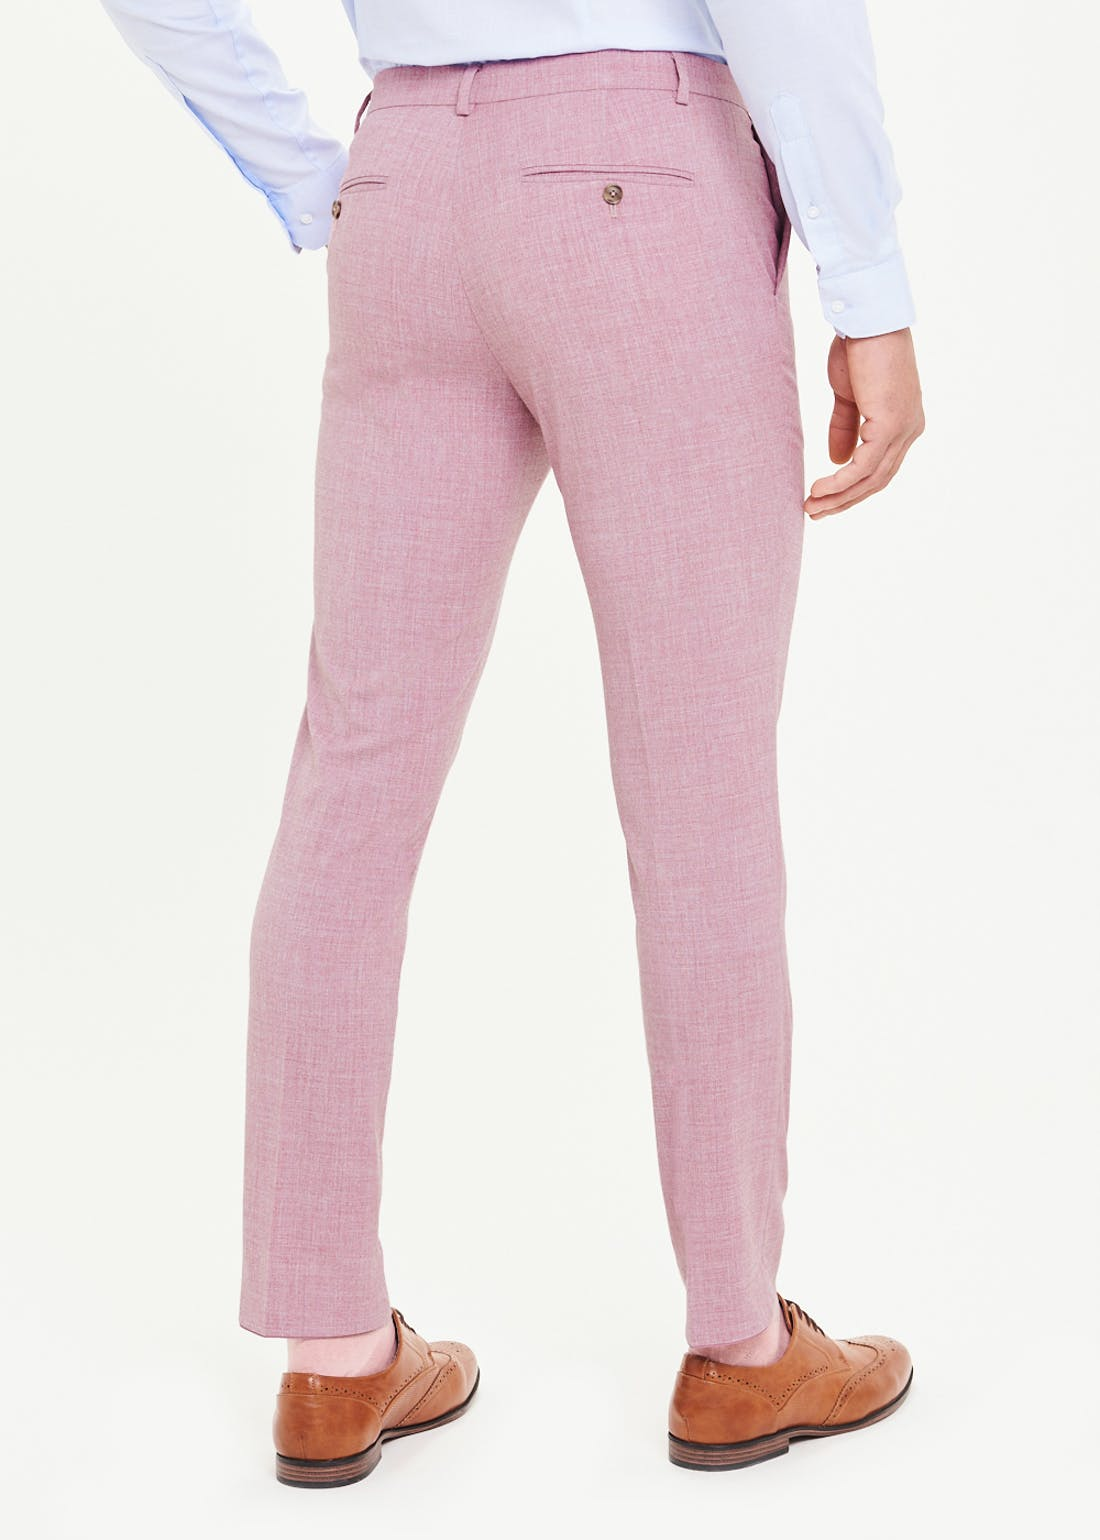 Taylor & Wright Gorman Skinny Fit Suit Trousers